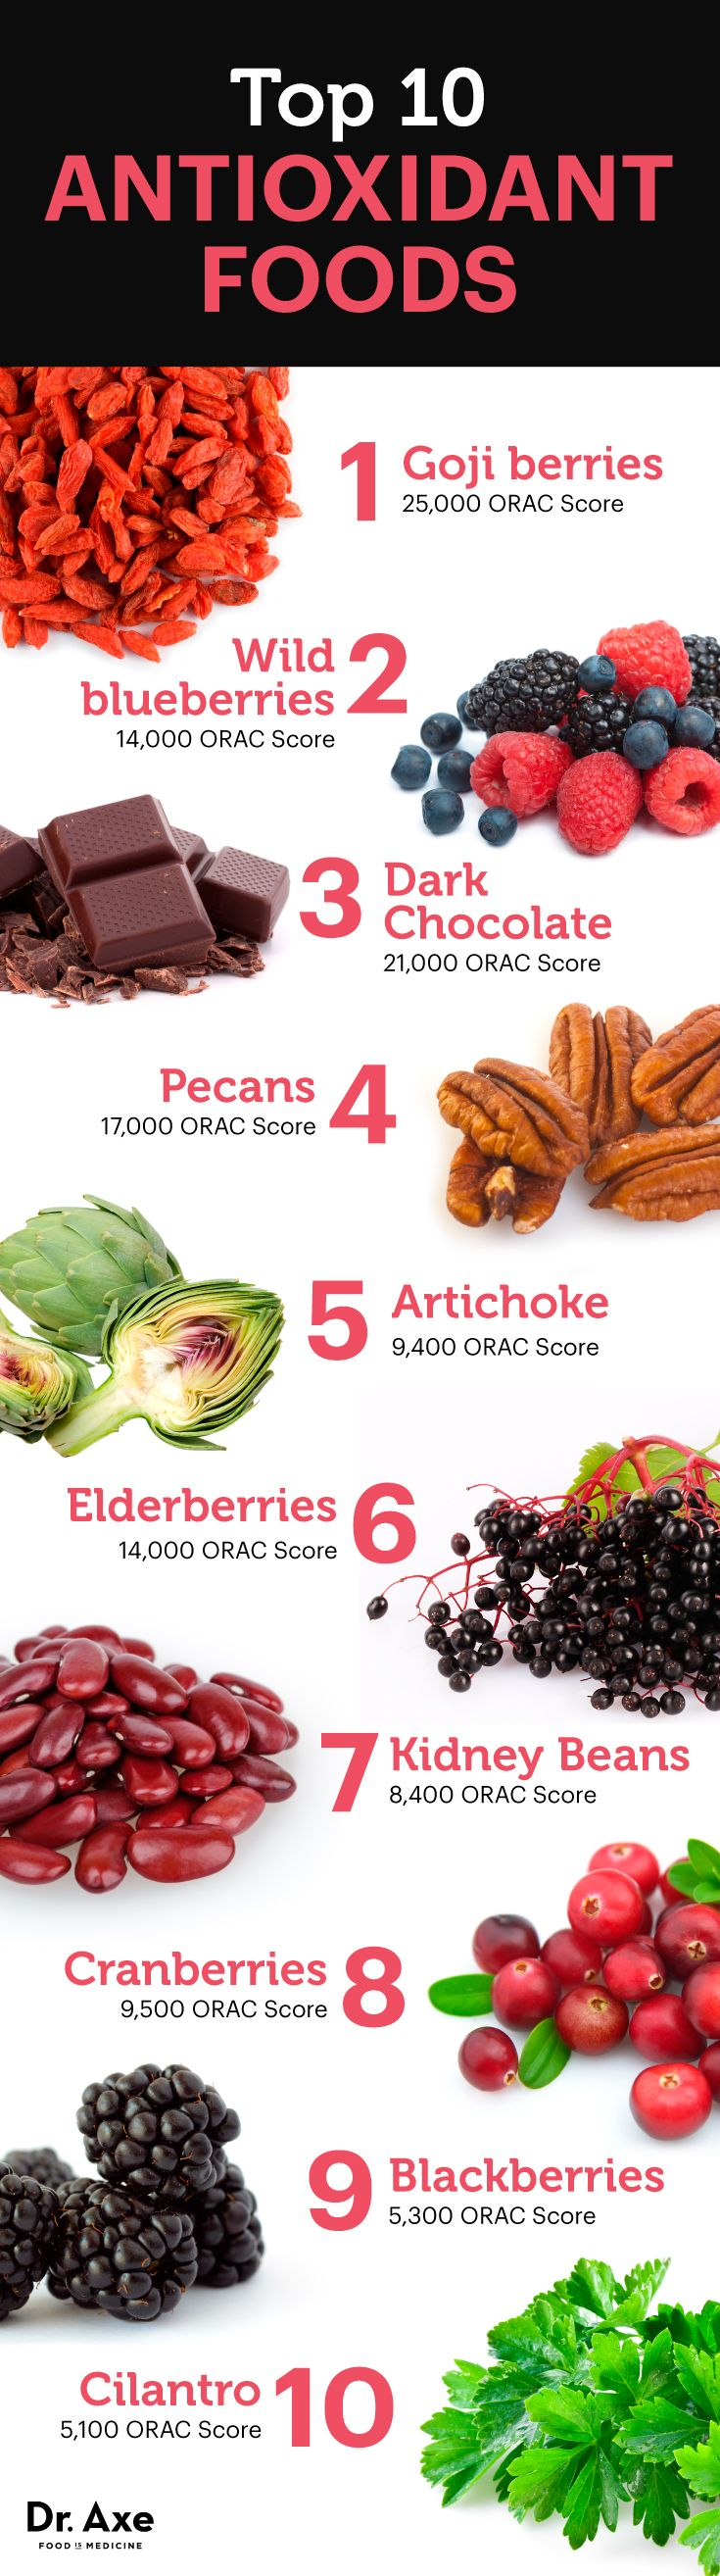 Top 10 High Antioxidant Foods Learn more about why antioxidant foods are important at natural-cancer-cure.com